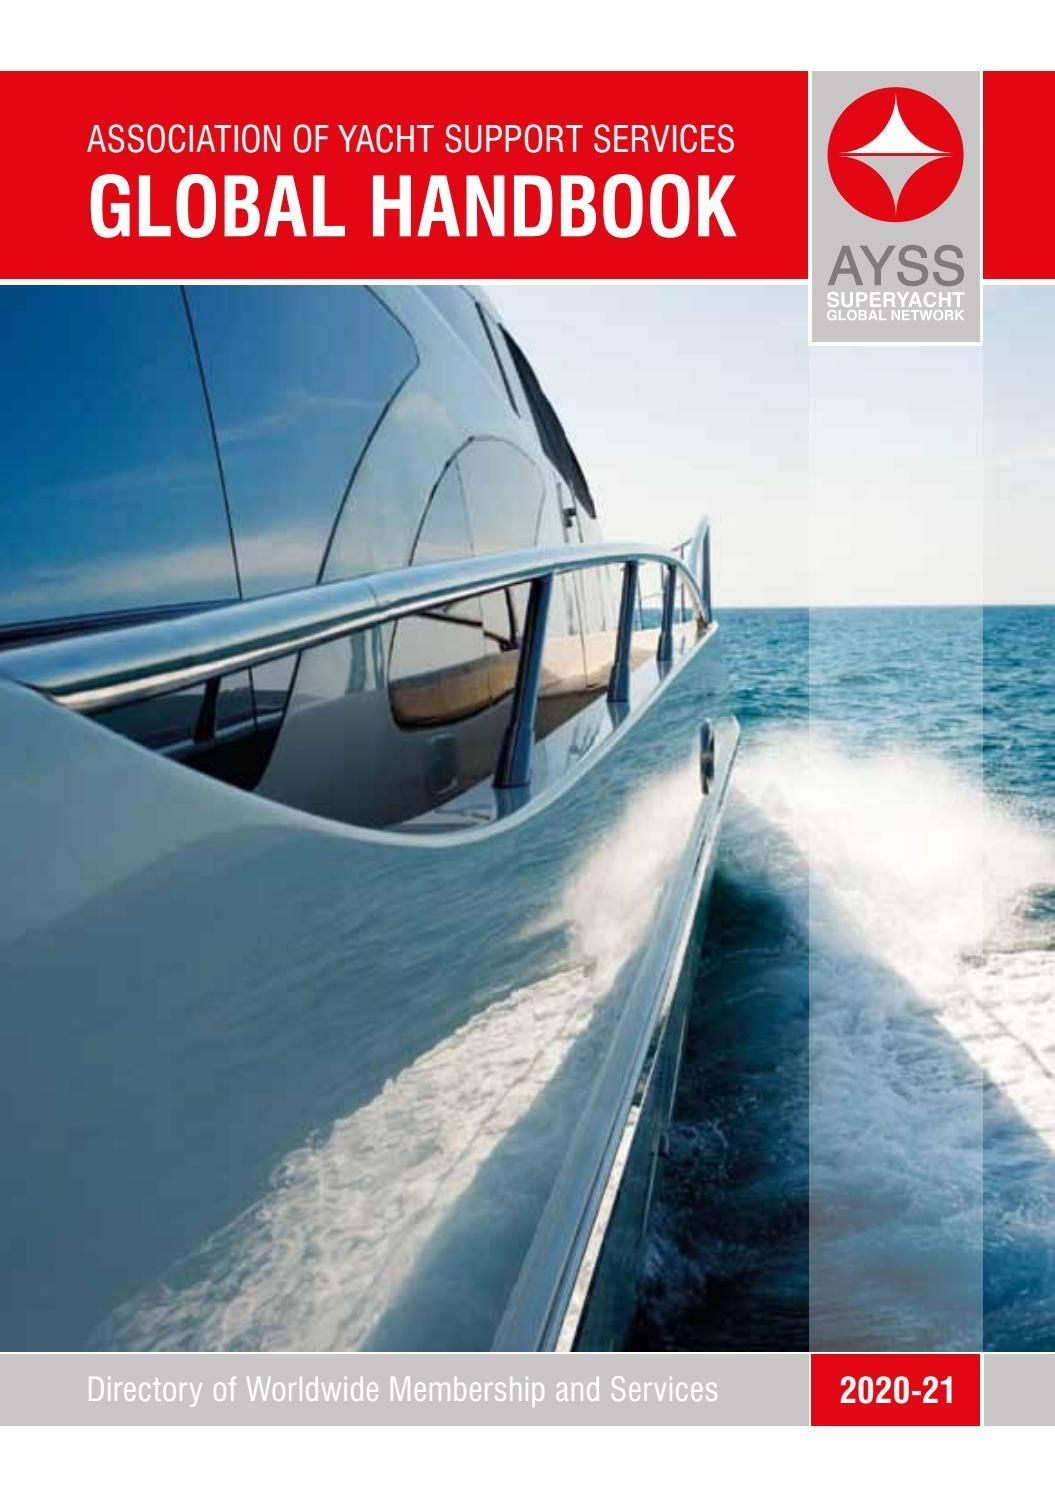 Association Of Yacht Support Services Handbook 2020-2021 By